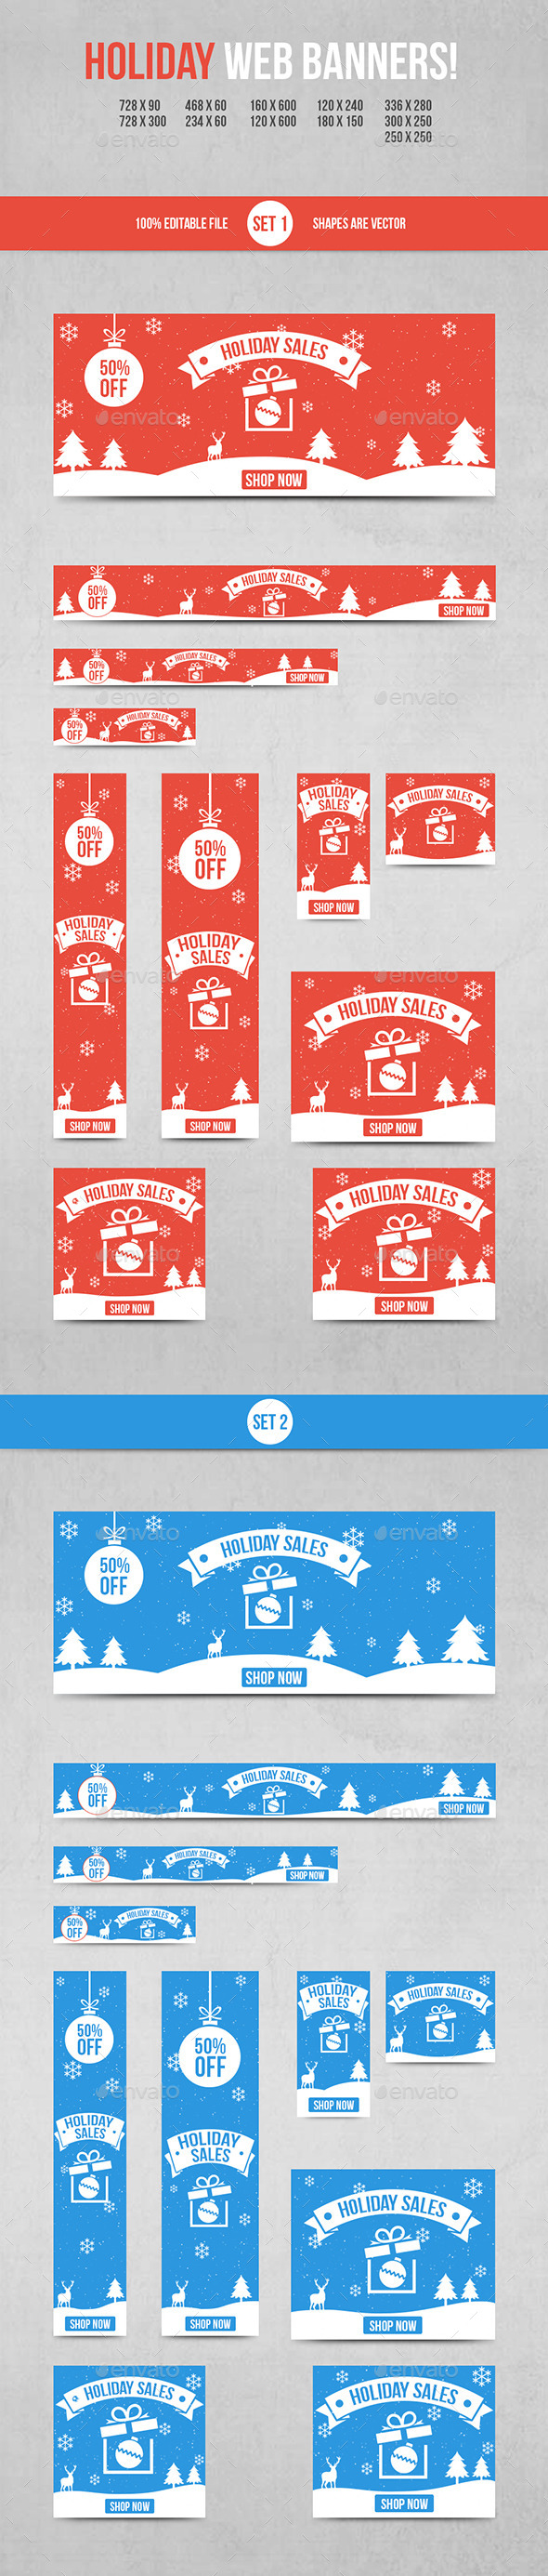 GraphicRiver Holiday Web Banners 9842543